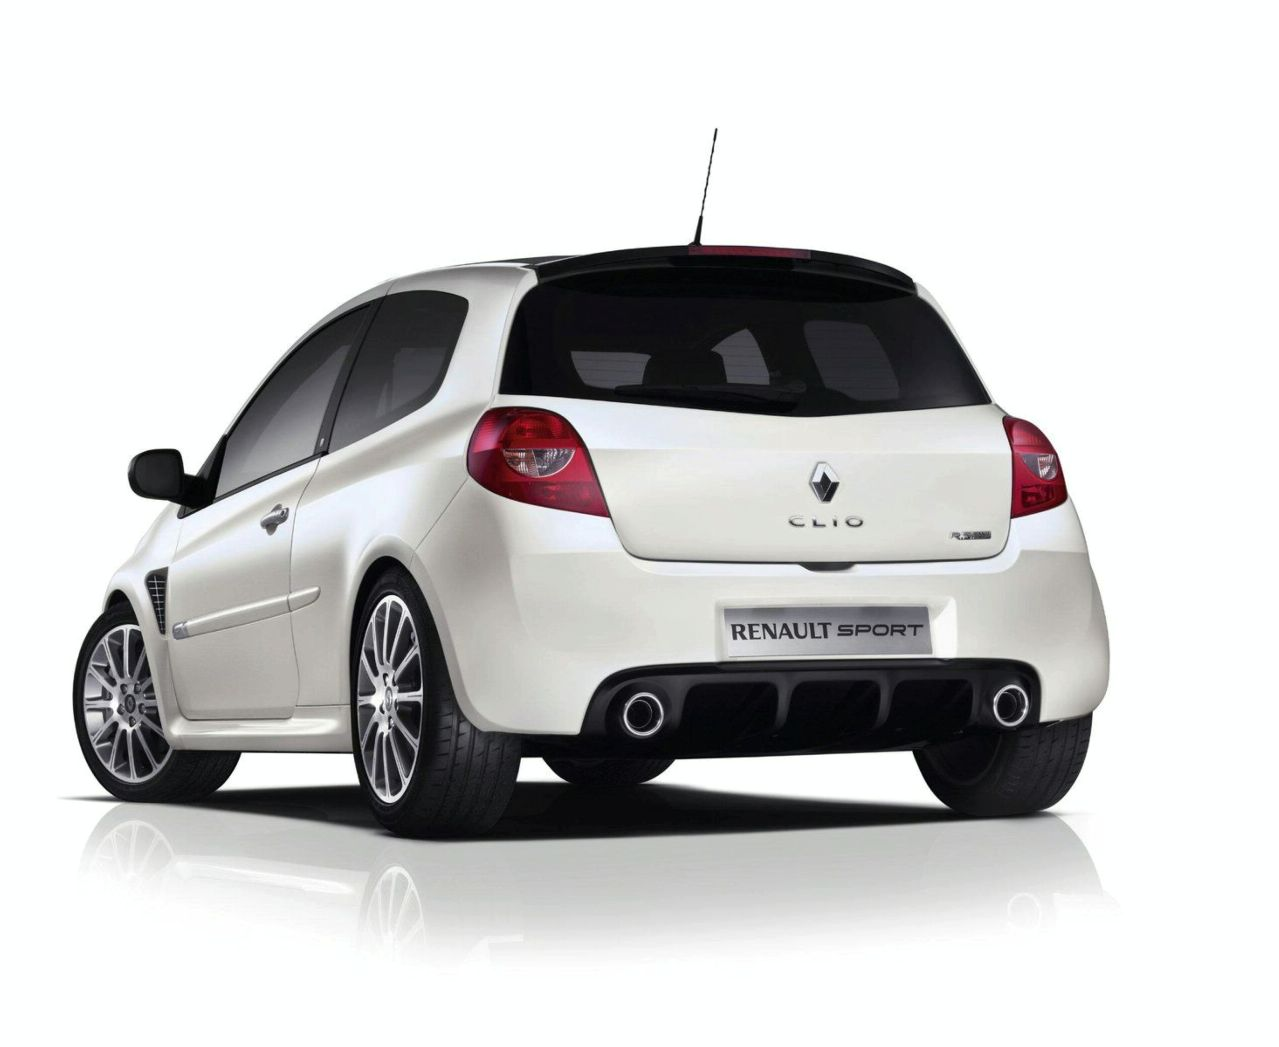 2010 renault clio rs 20th anniversary special edition renault wallpaper. Black Bedroom Furniture Sets. Home Design Ideas